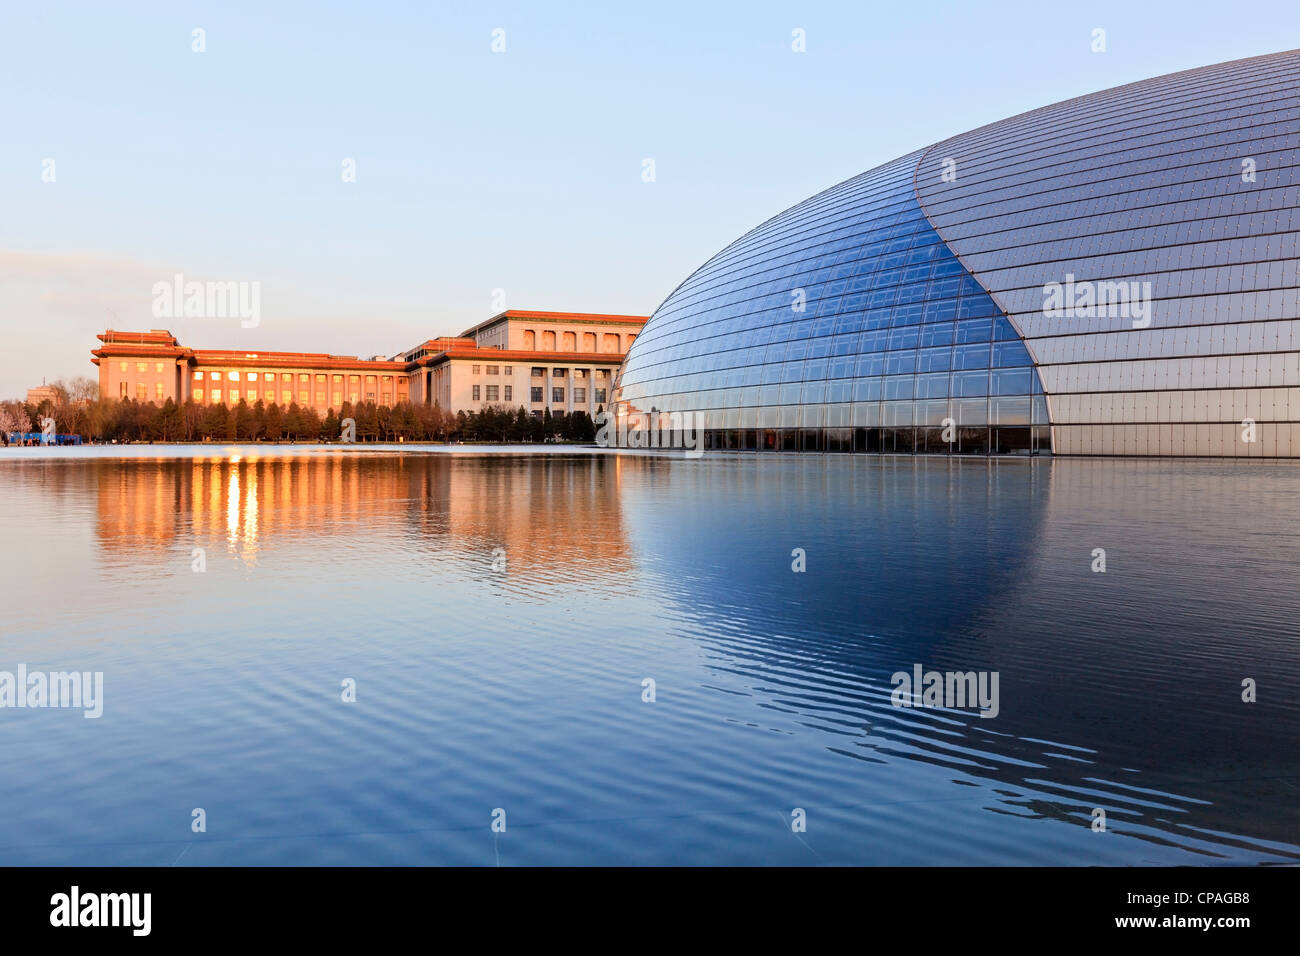 National Centre for the Performing Arts, Beijing, China and the Great Hall of the People at sunset. - Stock Image